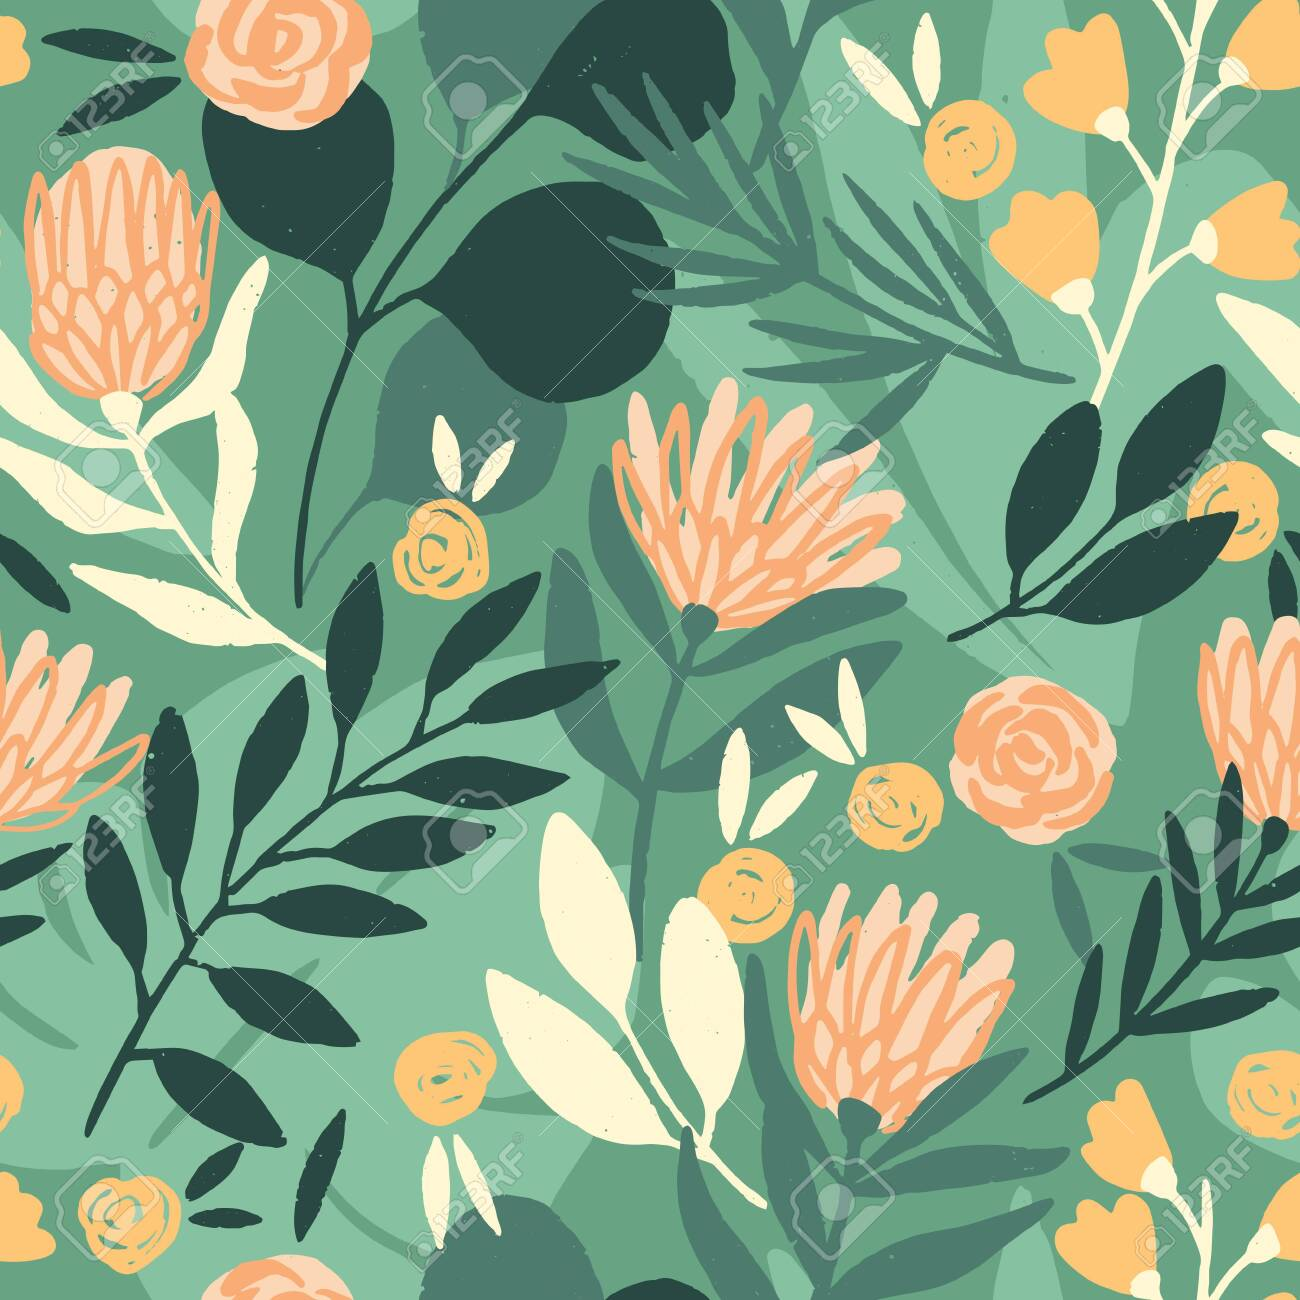 Protea and eucalyptus leaves pattern. Seamless motif for wrapping, wallpaper, fabric, decoration print. Vector illustration - 144271357